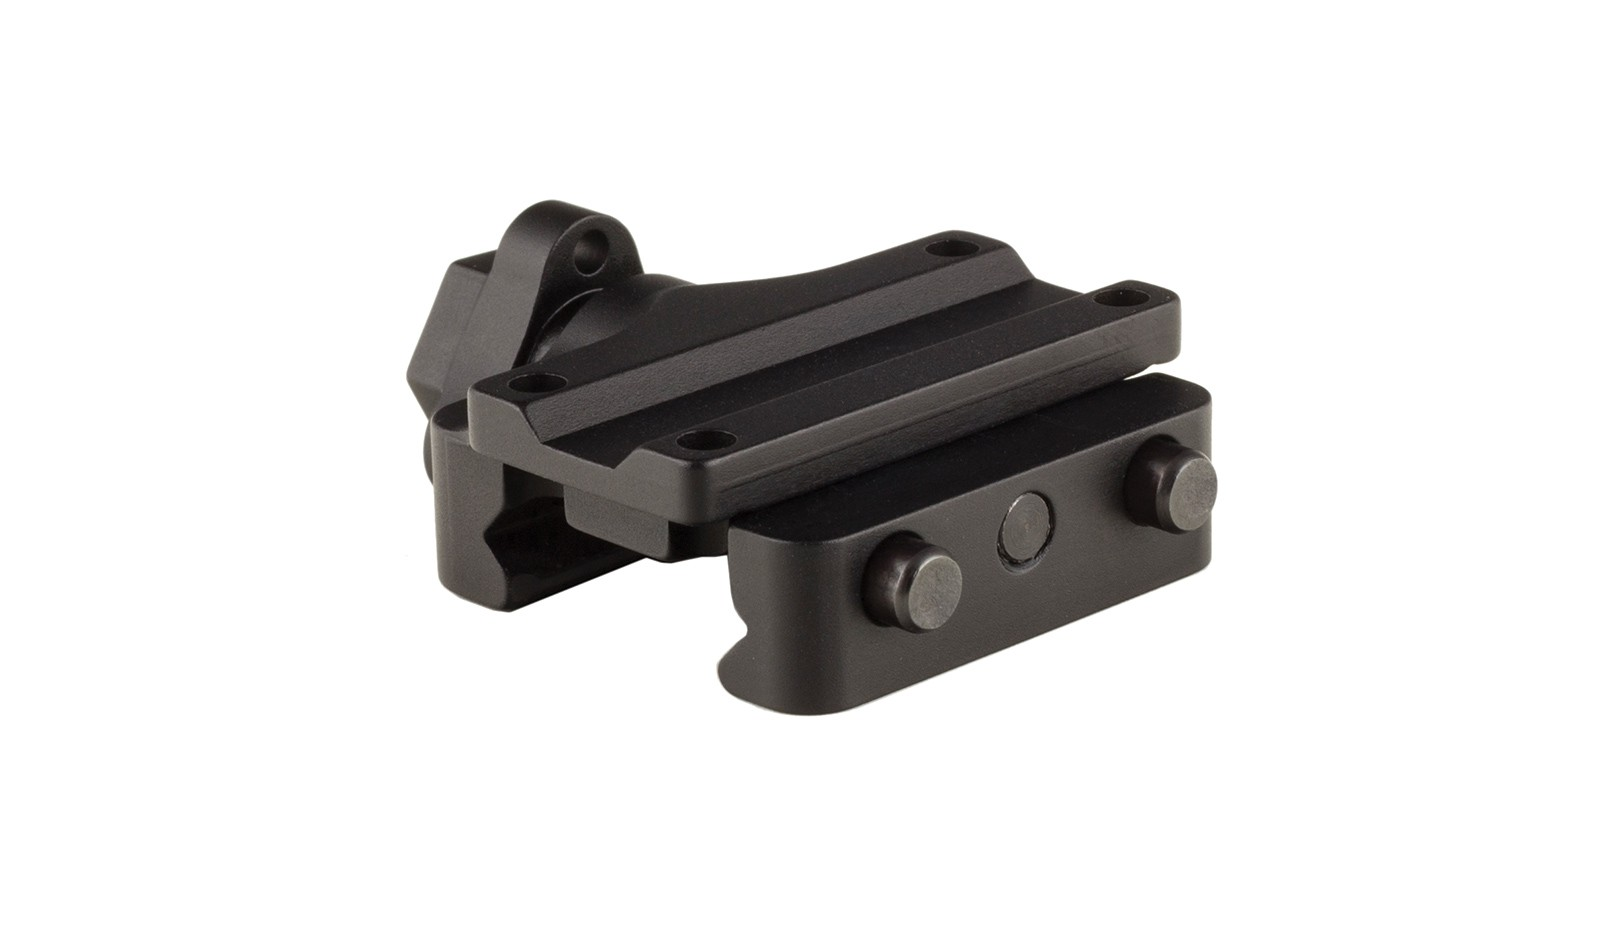 MRO® Quick Release Low Weaver Mount